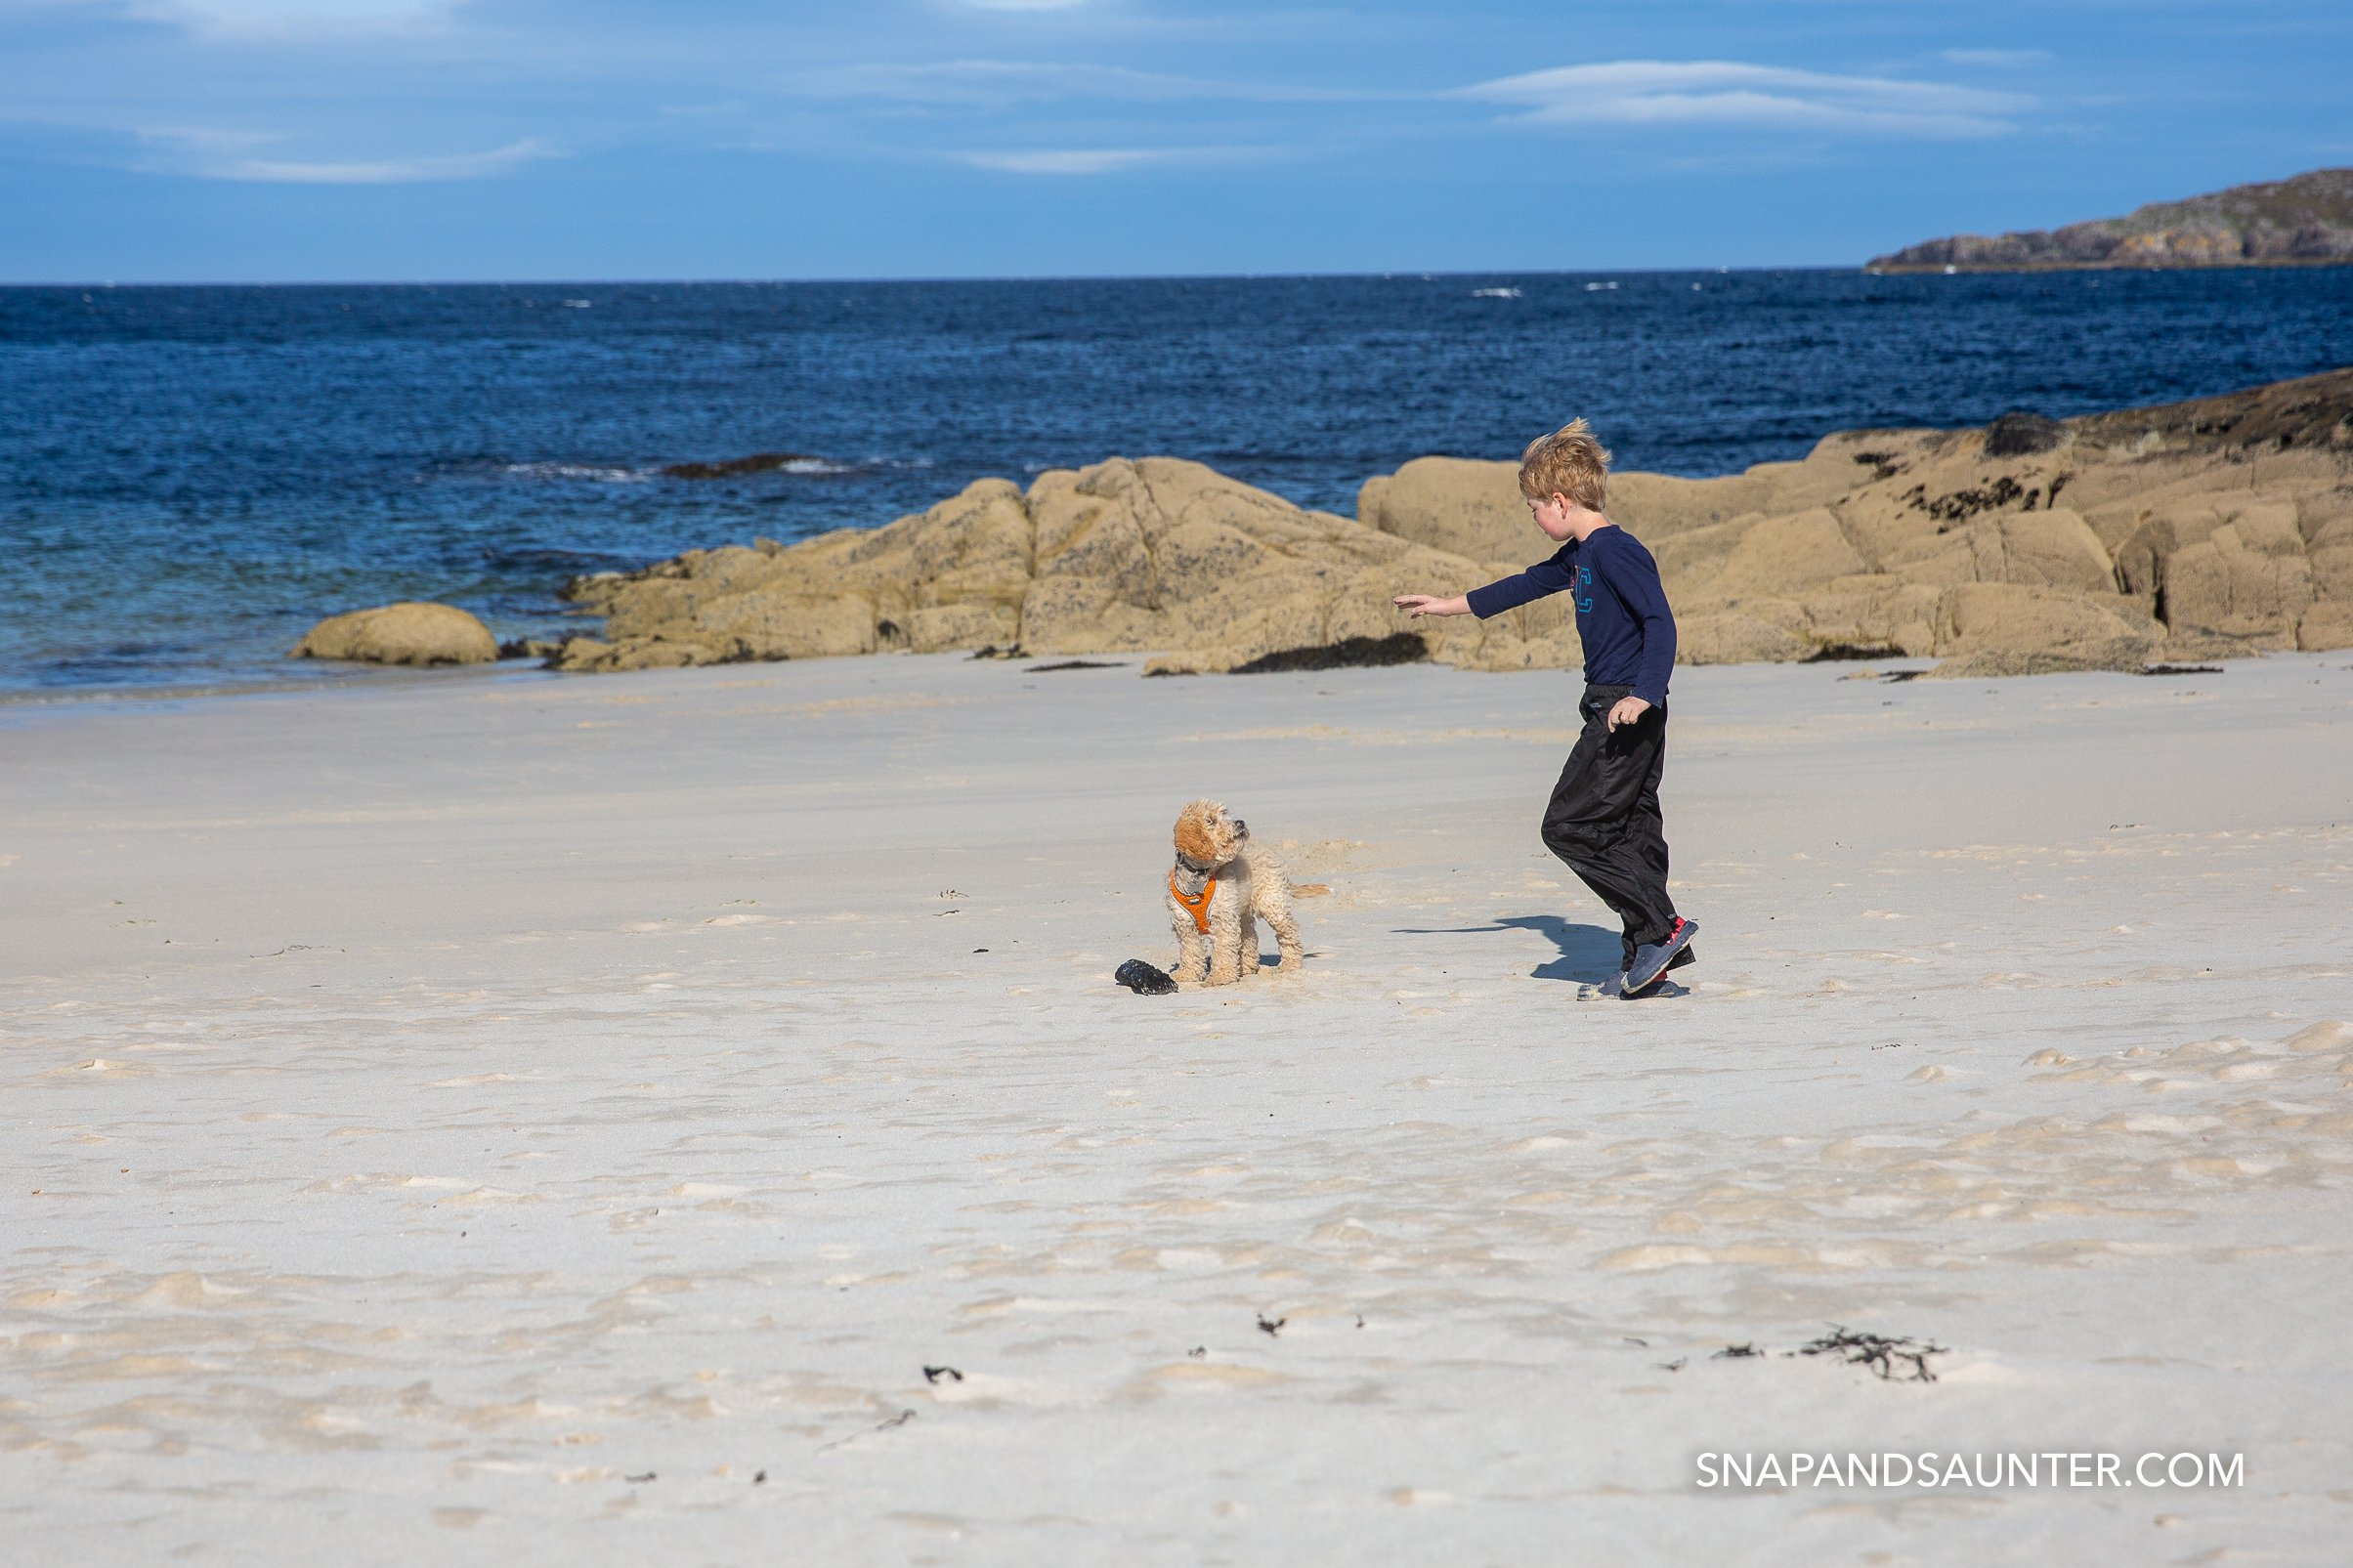 boy and a dog playing on a beach